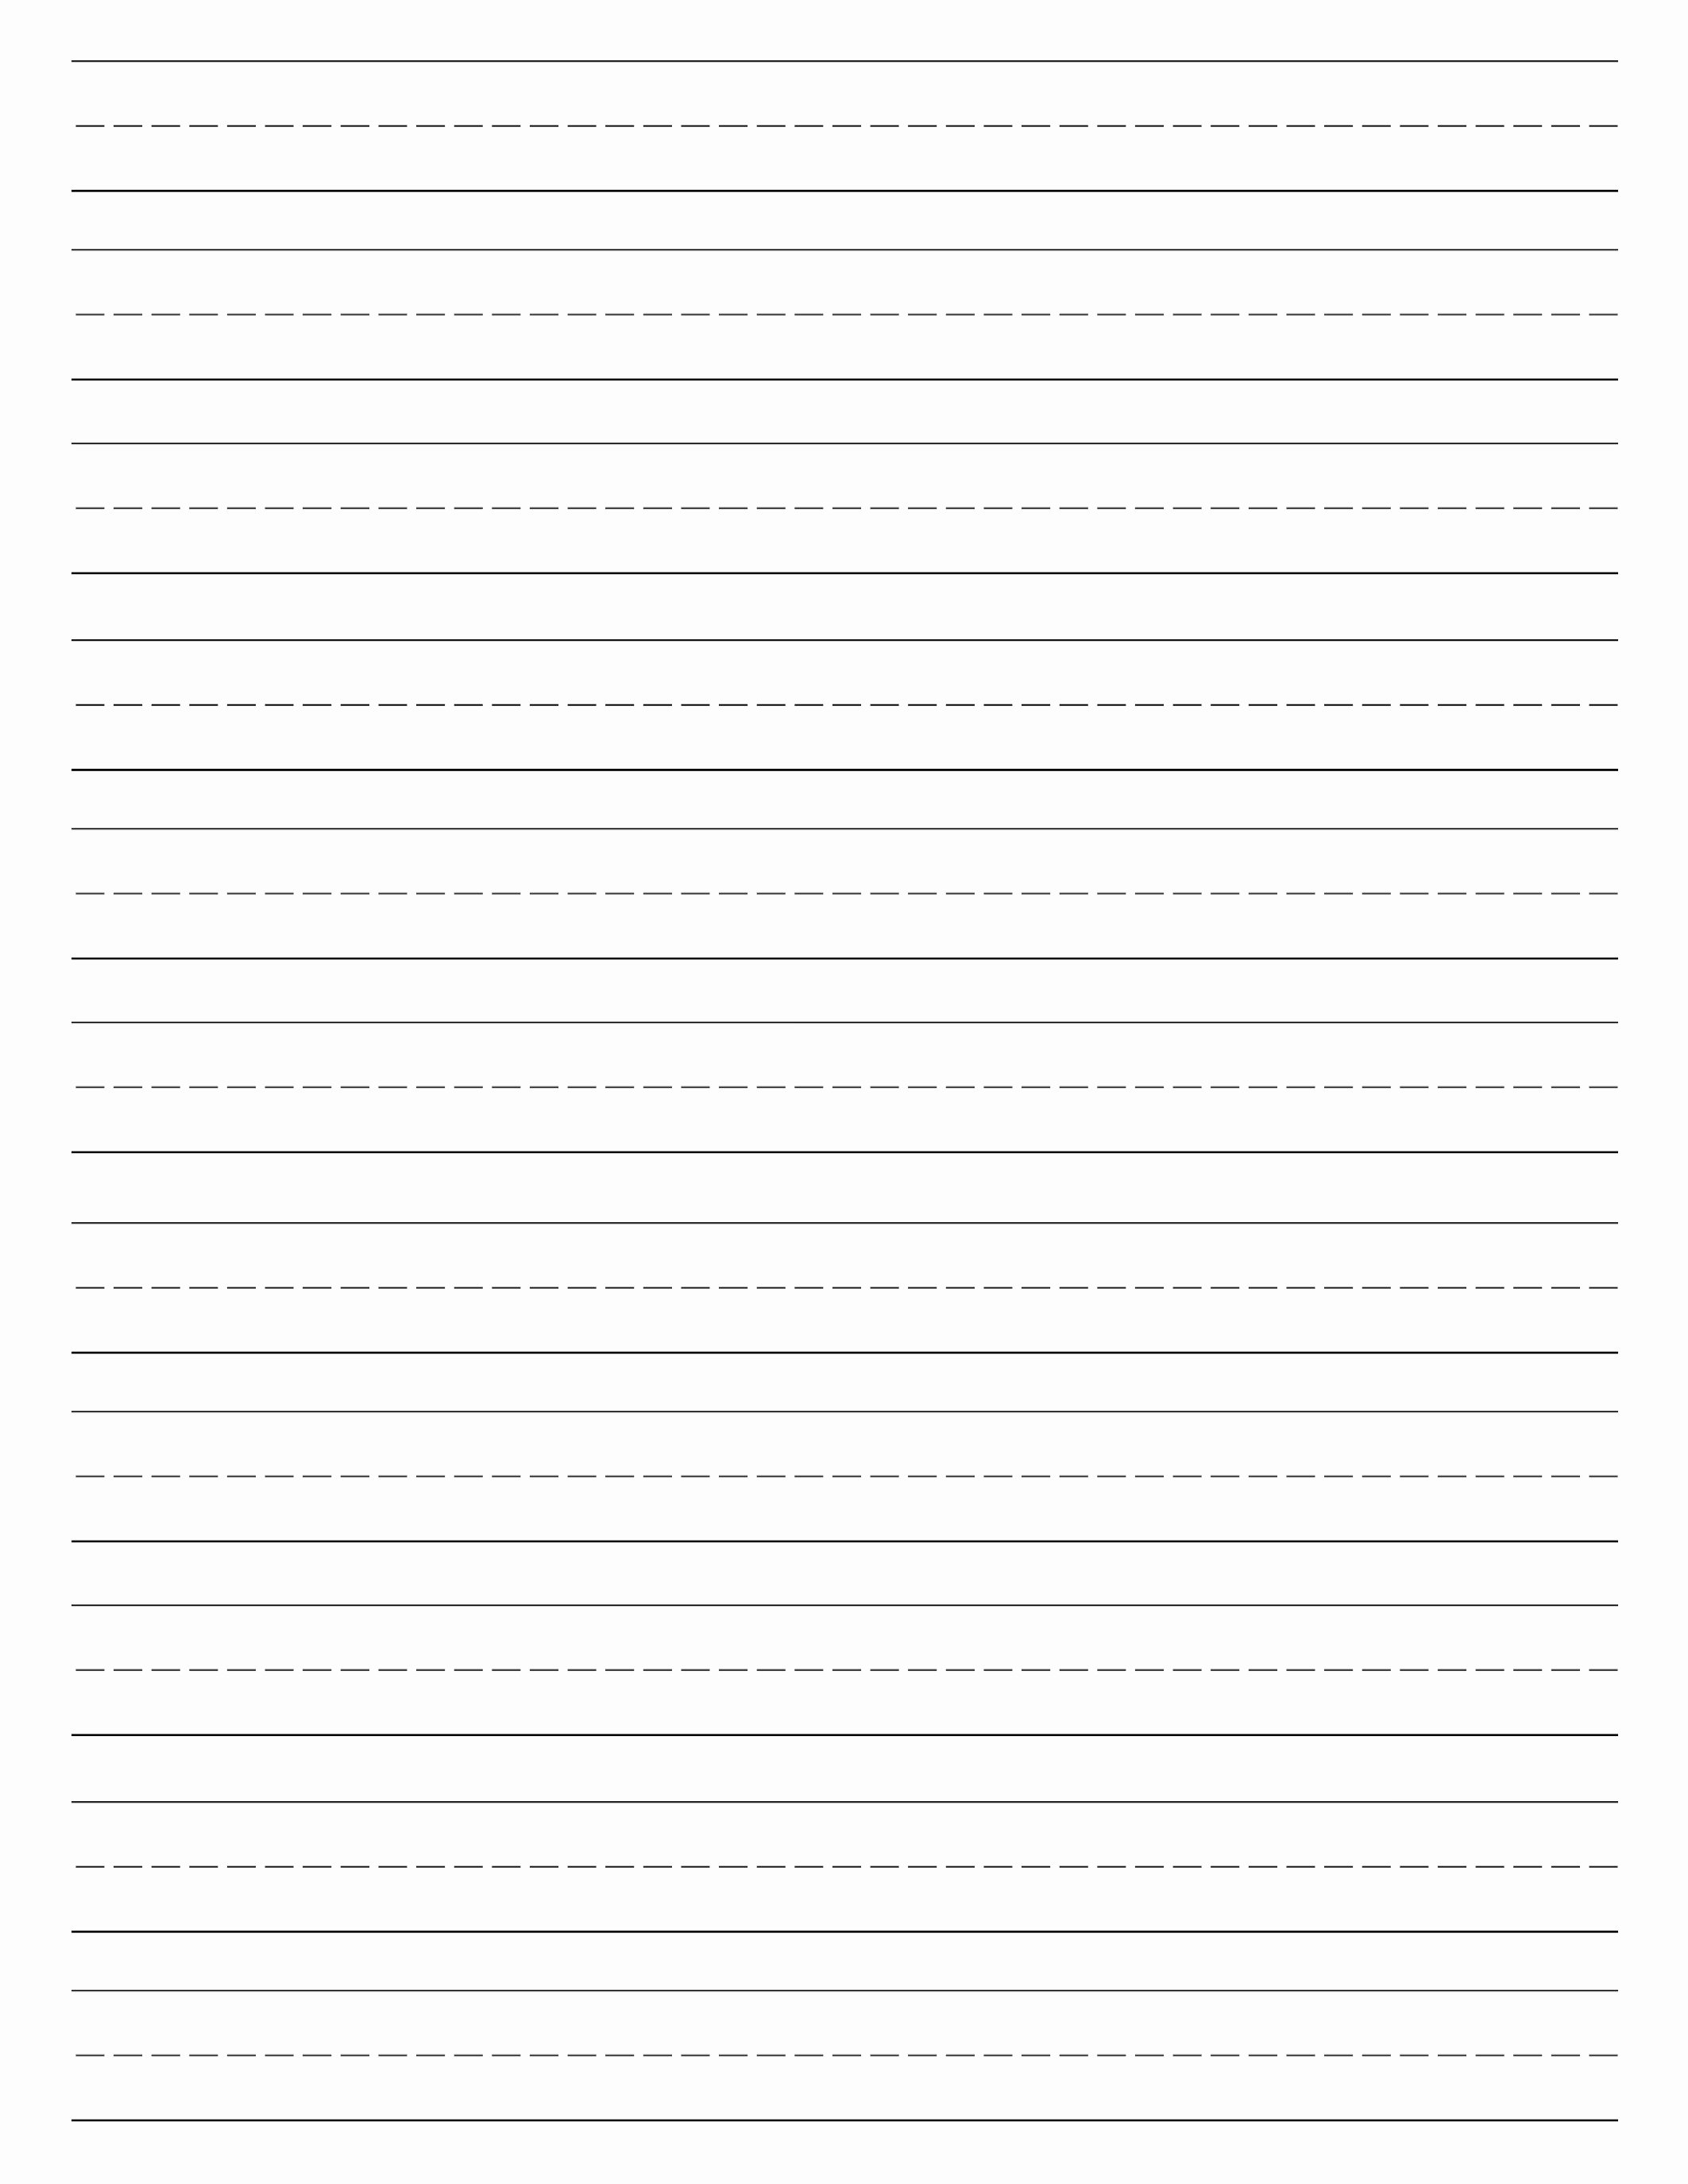 Wide Lined Paper for Kindergarten Fresh Free Printable Lined Handwriting Paper Printable Pages